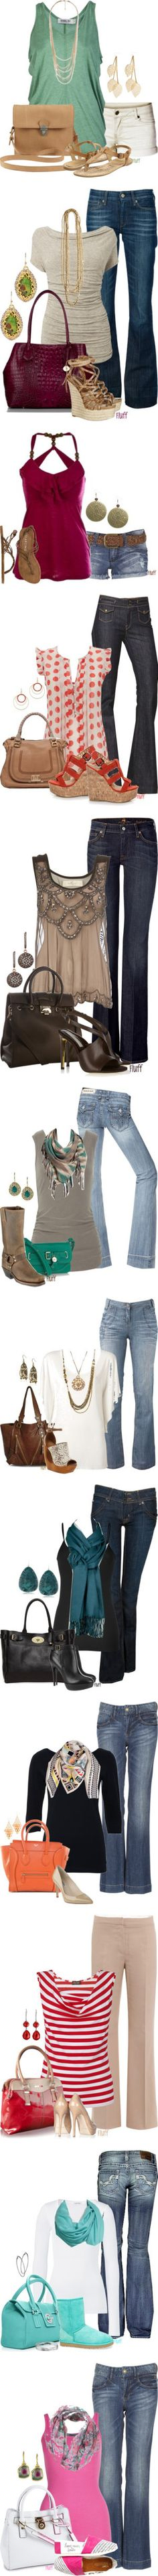 """cute"" by suzette-desaulniers-fisher on Polyvore"